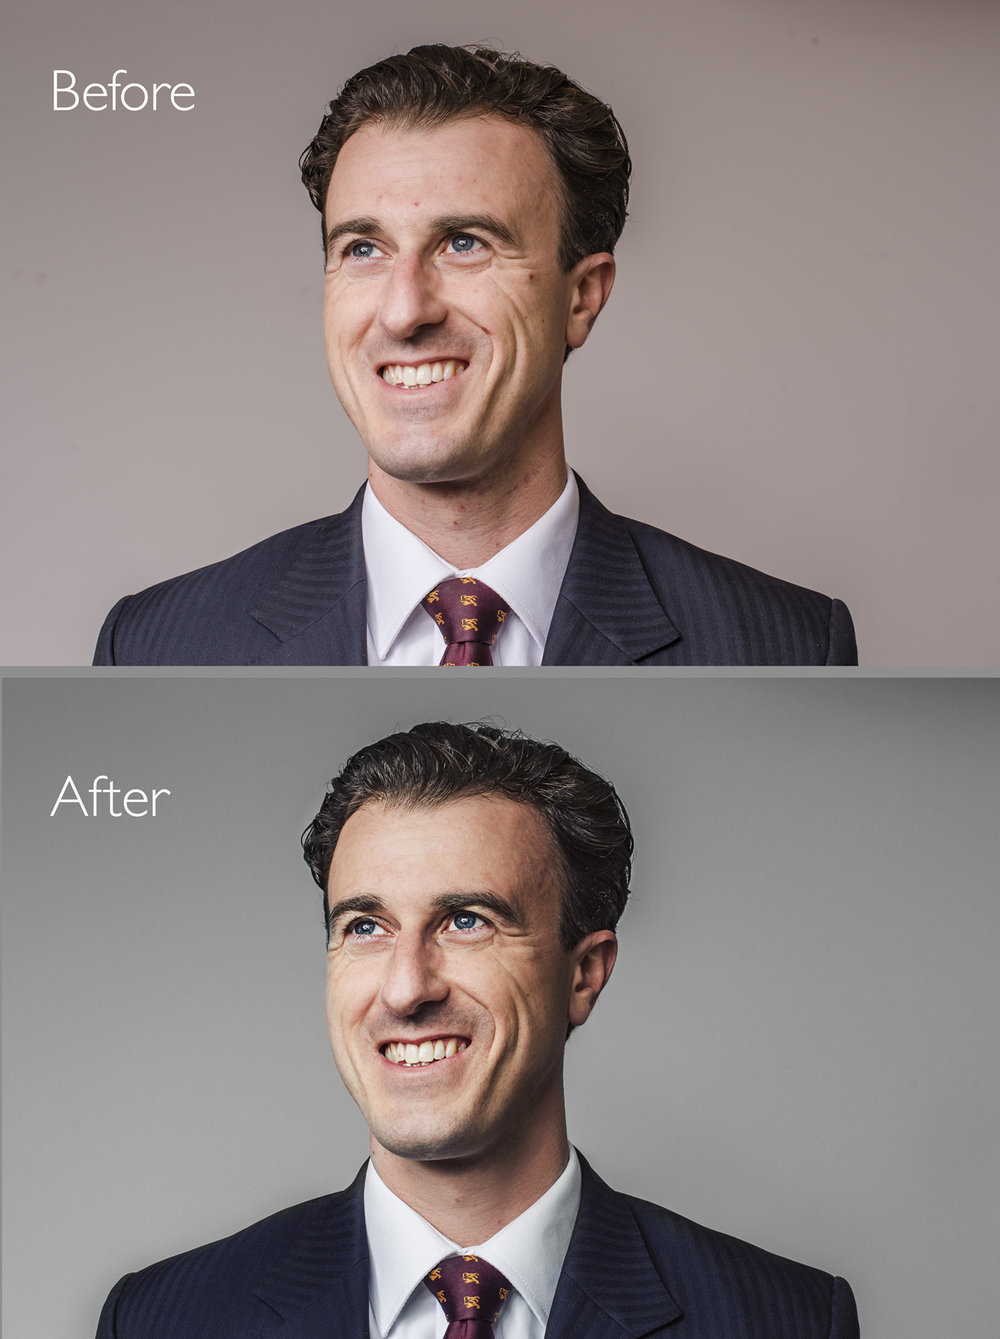 corporate headshot retouching